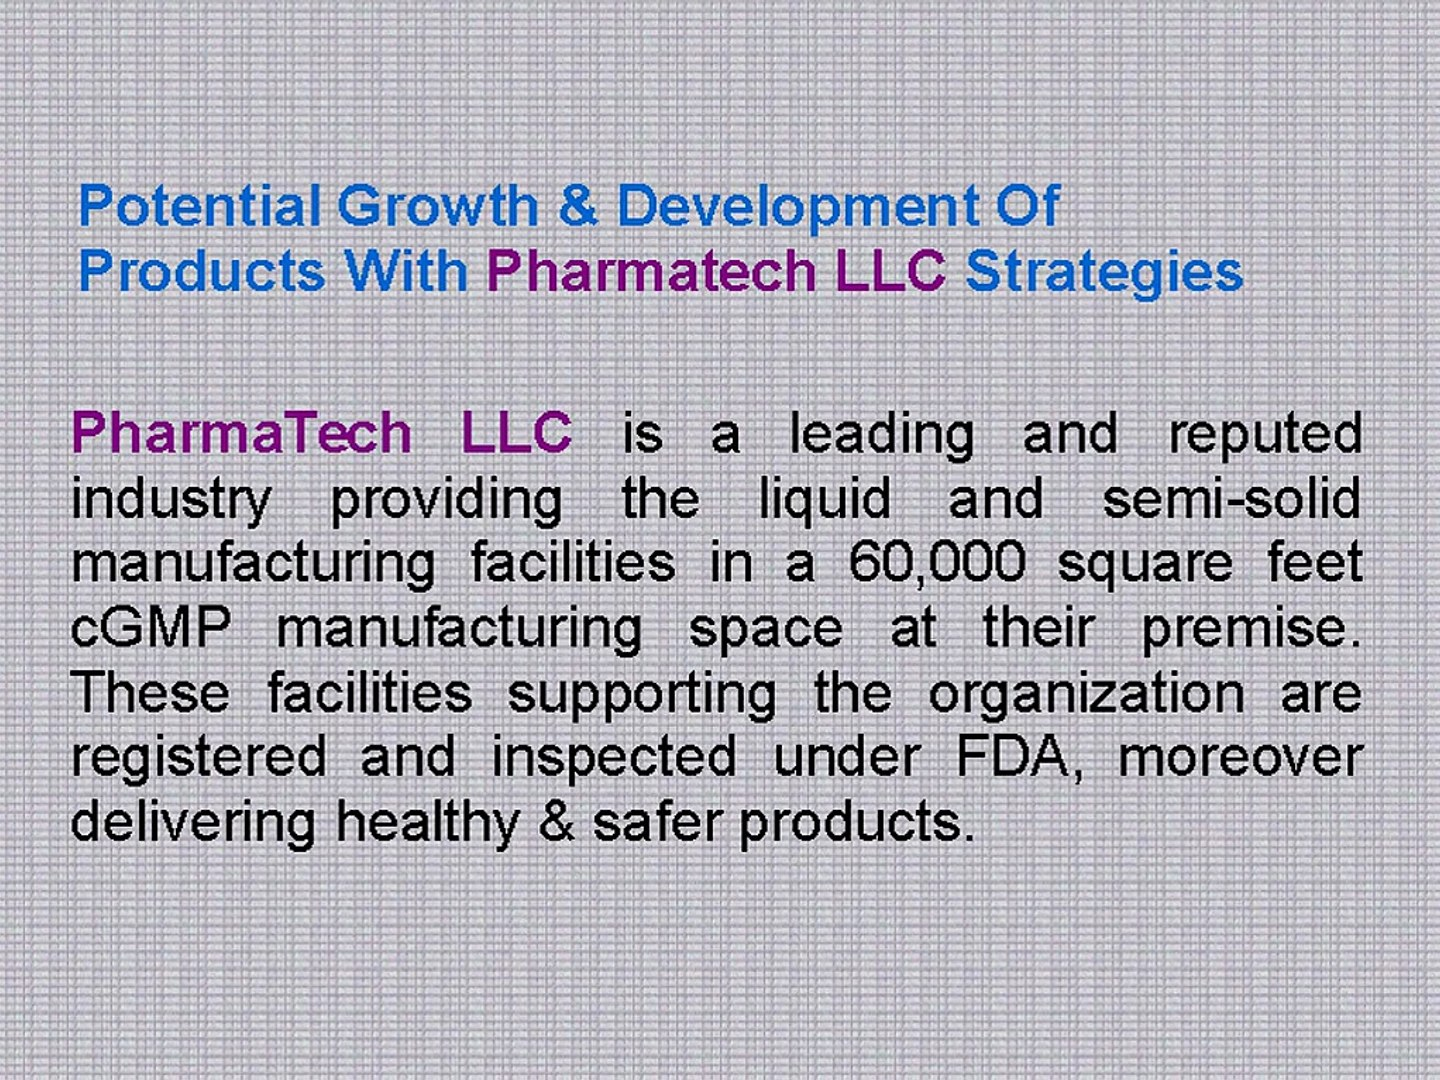 PharmaTech LLC is a FDA-Registered Organization Focusing On Delivering  Top-Quality Products